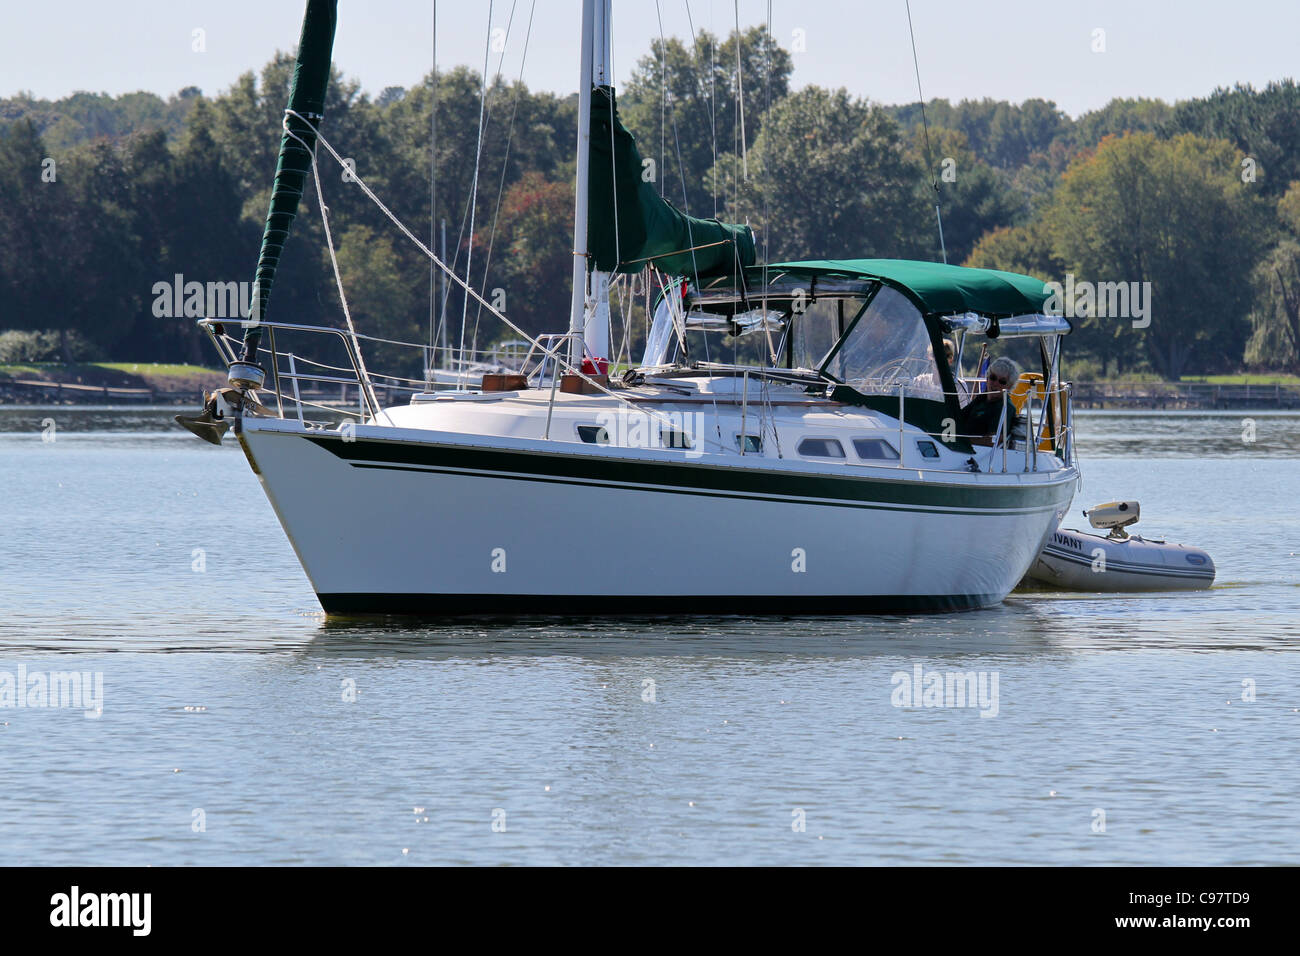 A cruising sailboat on Trippe Creek - Stock Image